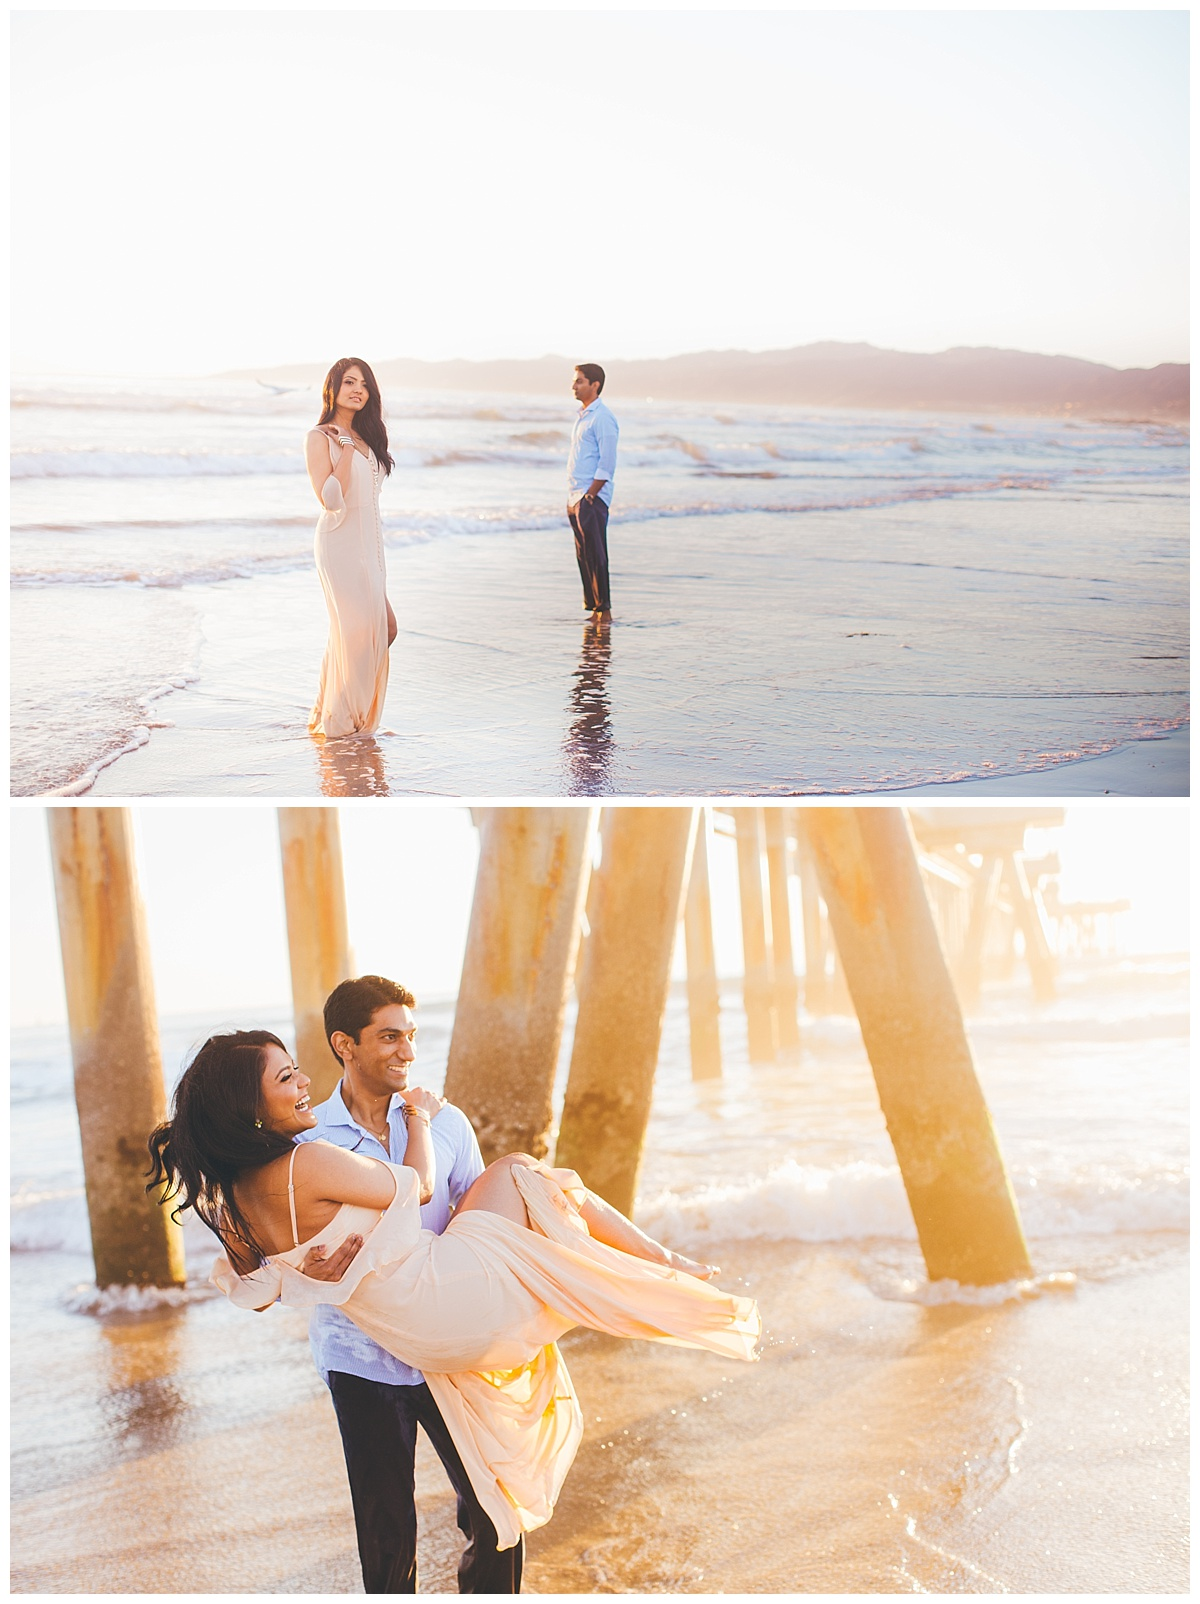 Venice Beach Engagement Session Photos